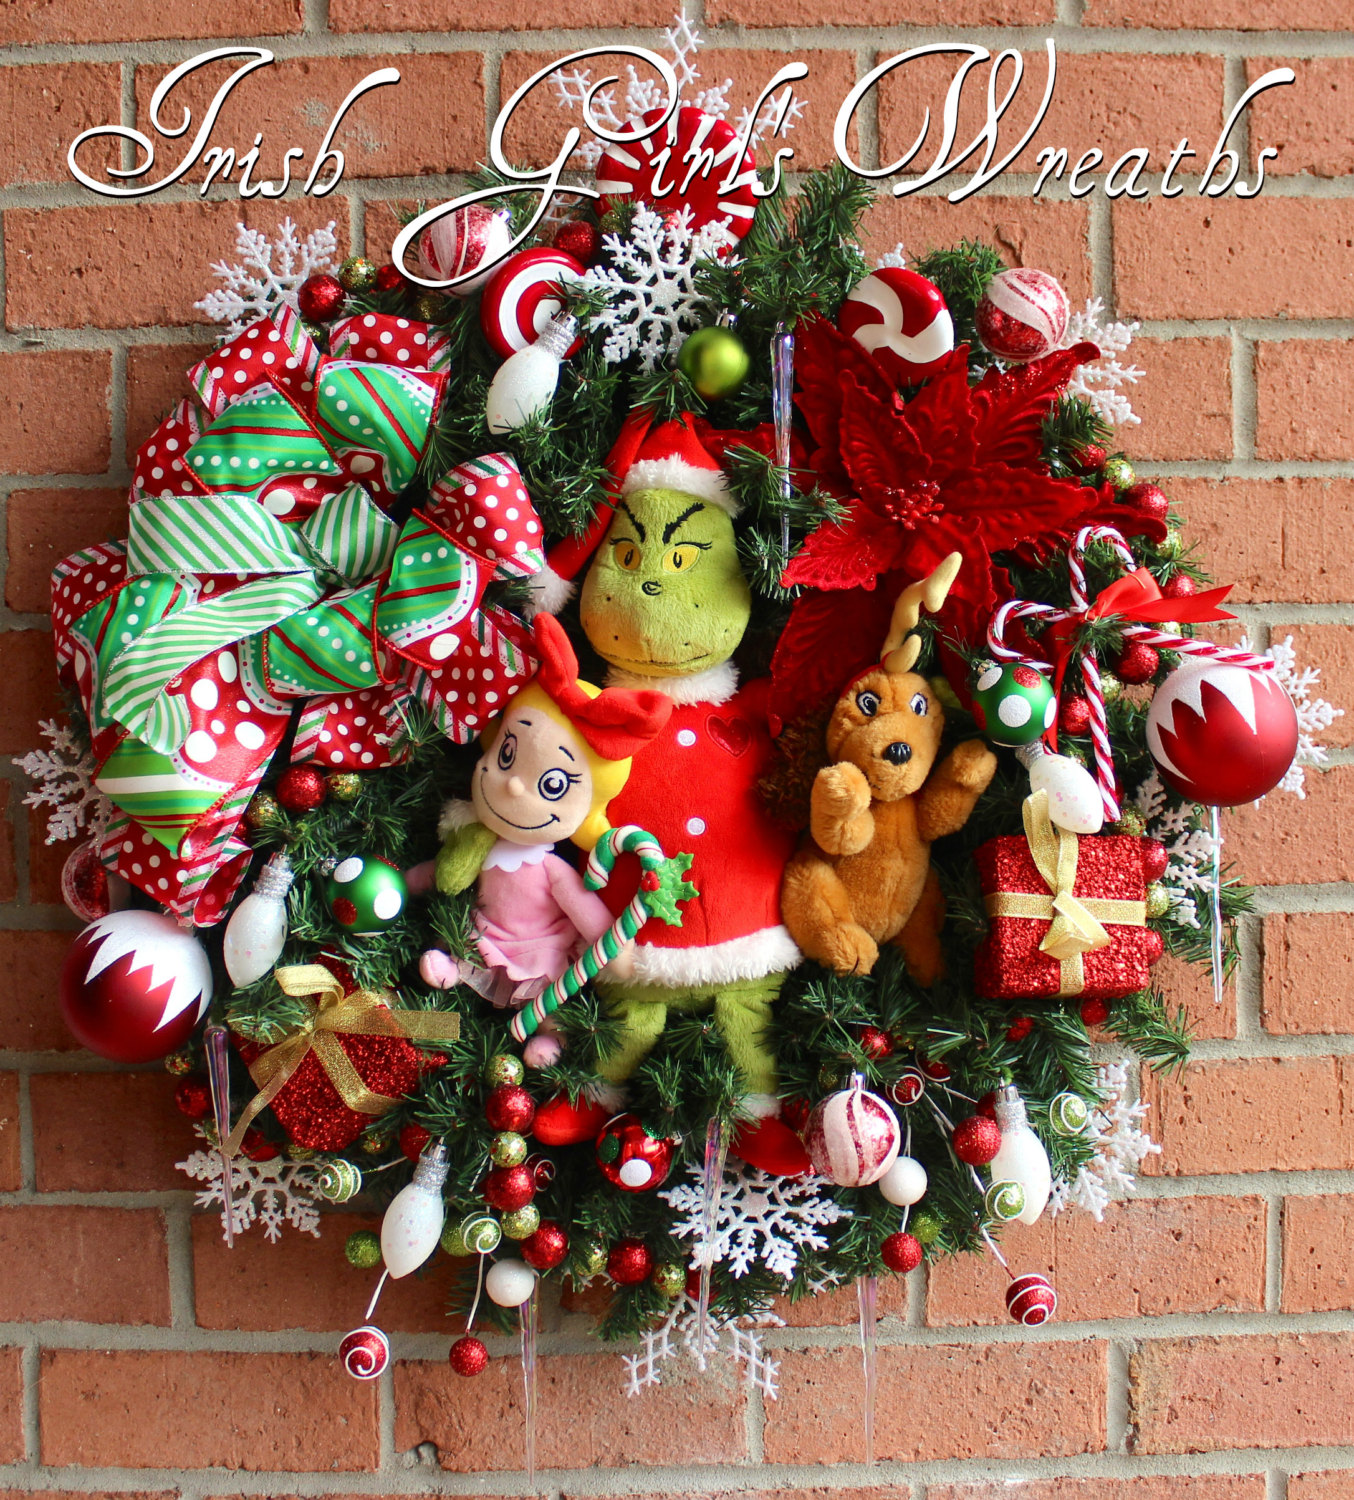 Grinch & Max & Cindy Lou Who Christmas Wreath #2